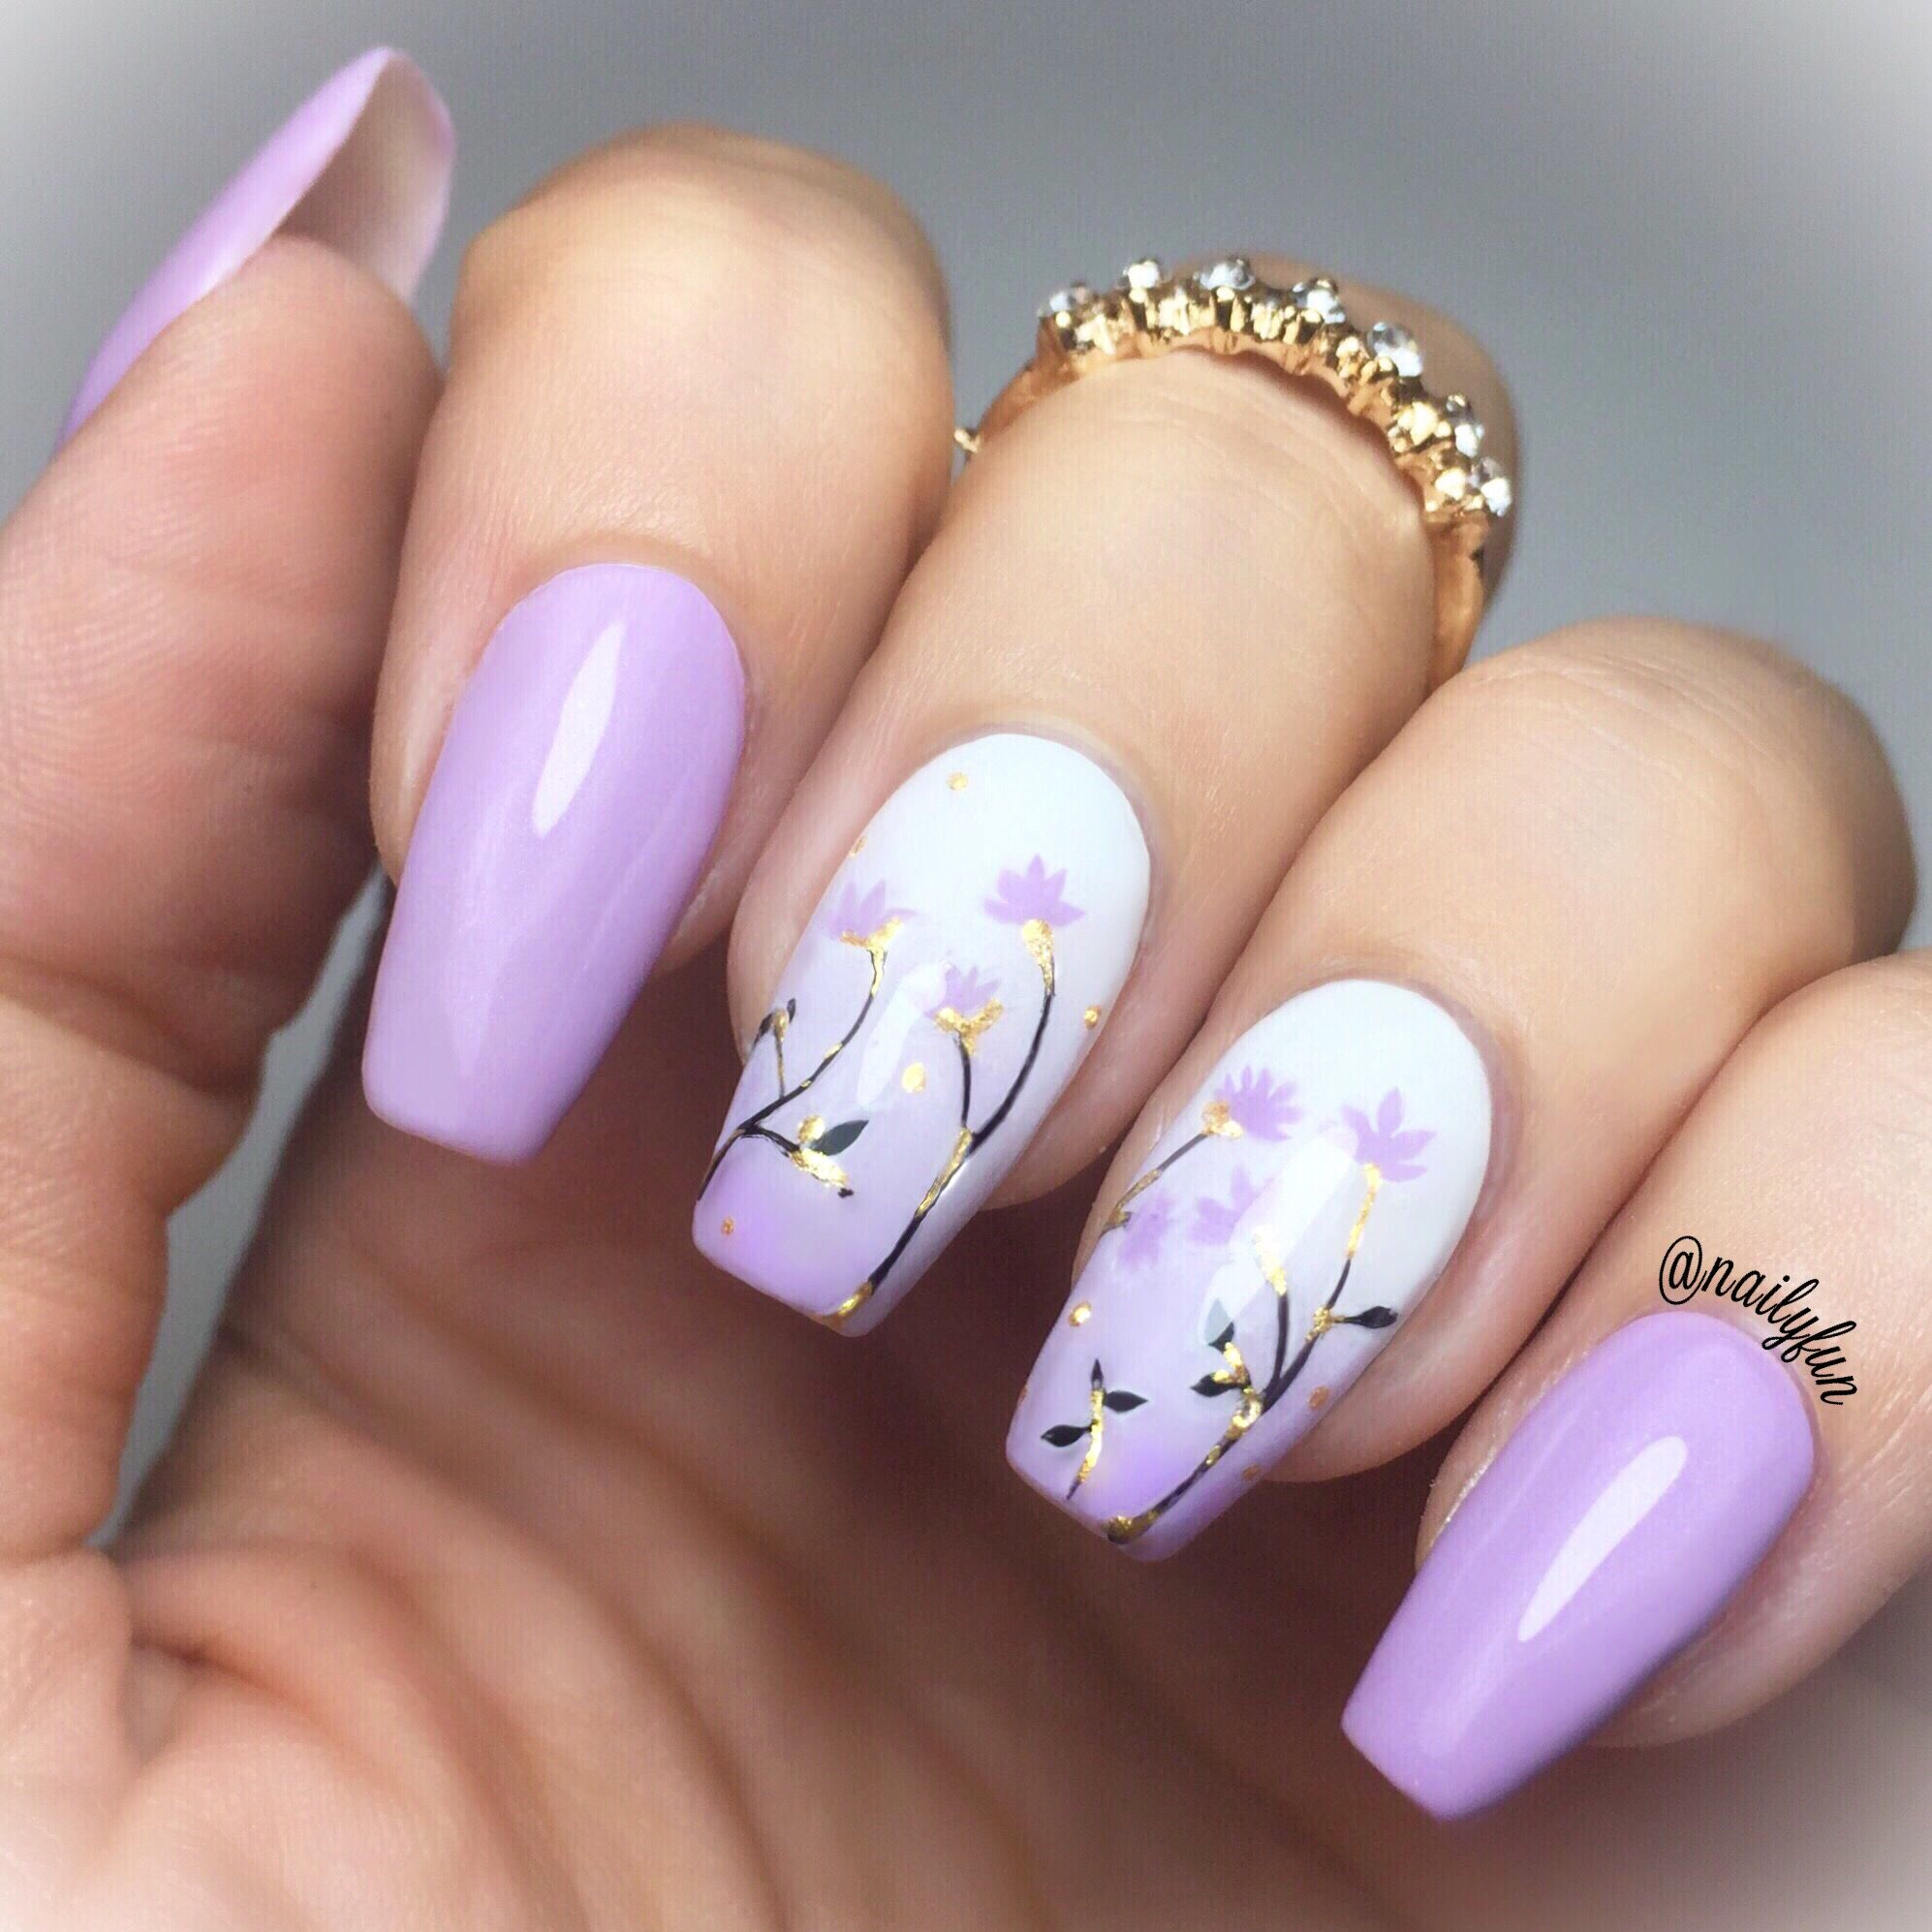 Gradient Purple Flower Nails Made With Nail Polish Nail Designs Coffin Nails Designs Flower Nails